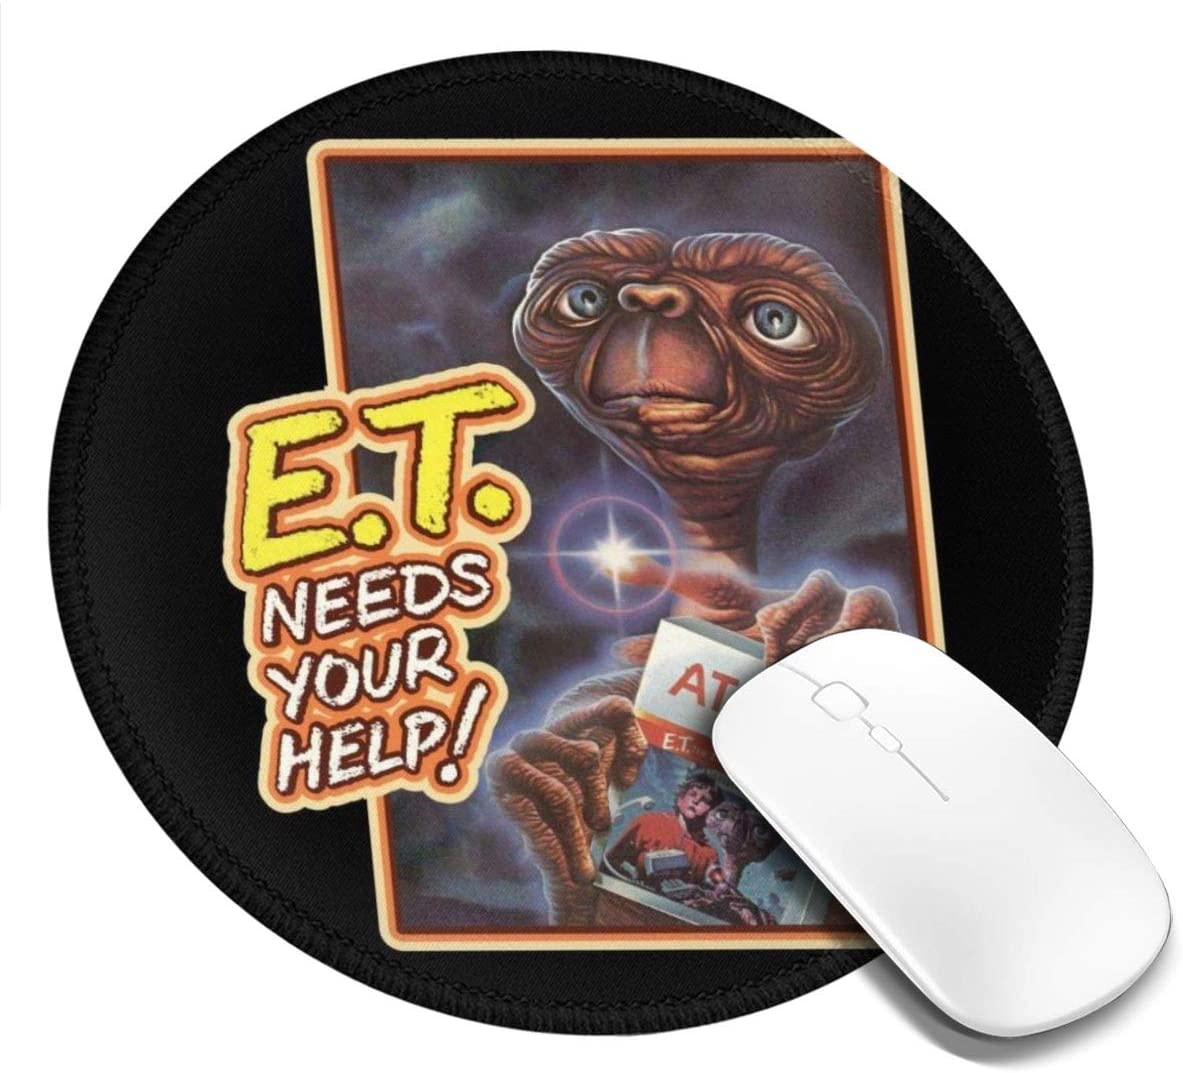 Et Needs Your Help Game Cover Customized Designs Non-Slip Rubber Base Gaming Mouse Pads for Mac,7.9x7.9 in, Pc, Computers. Ideal for Working Or Game